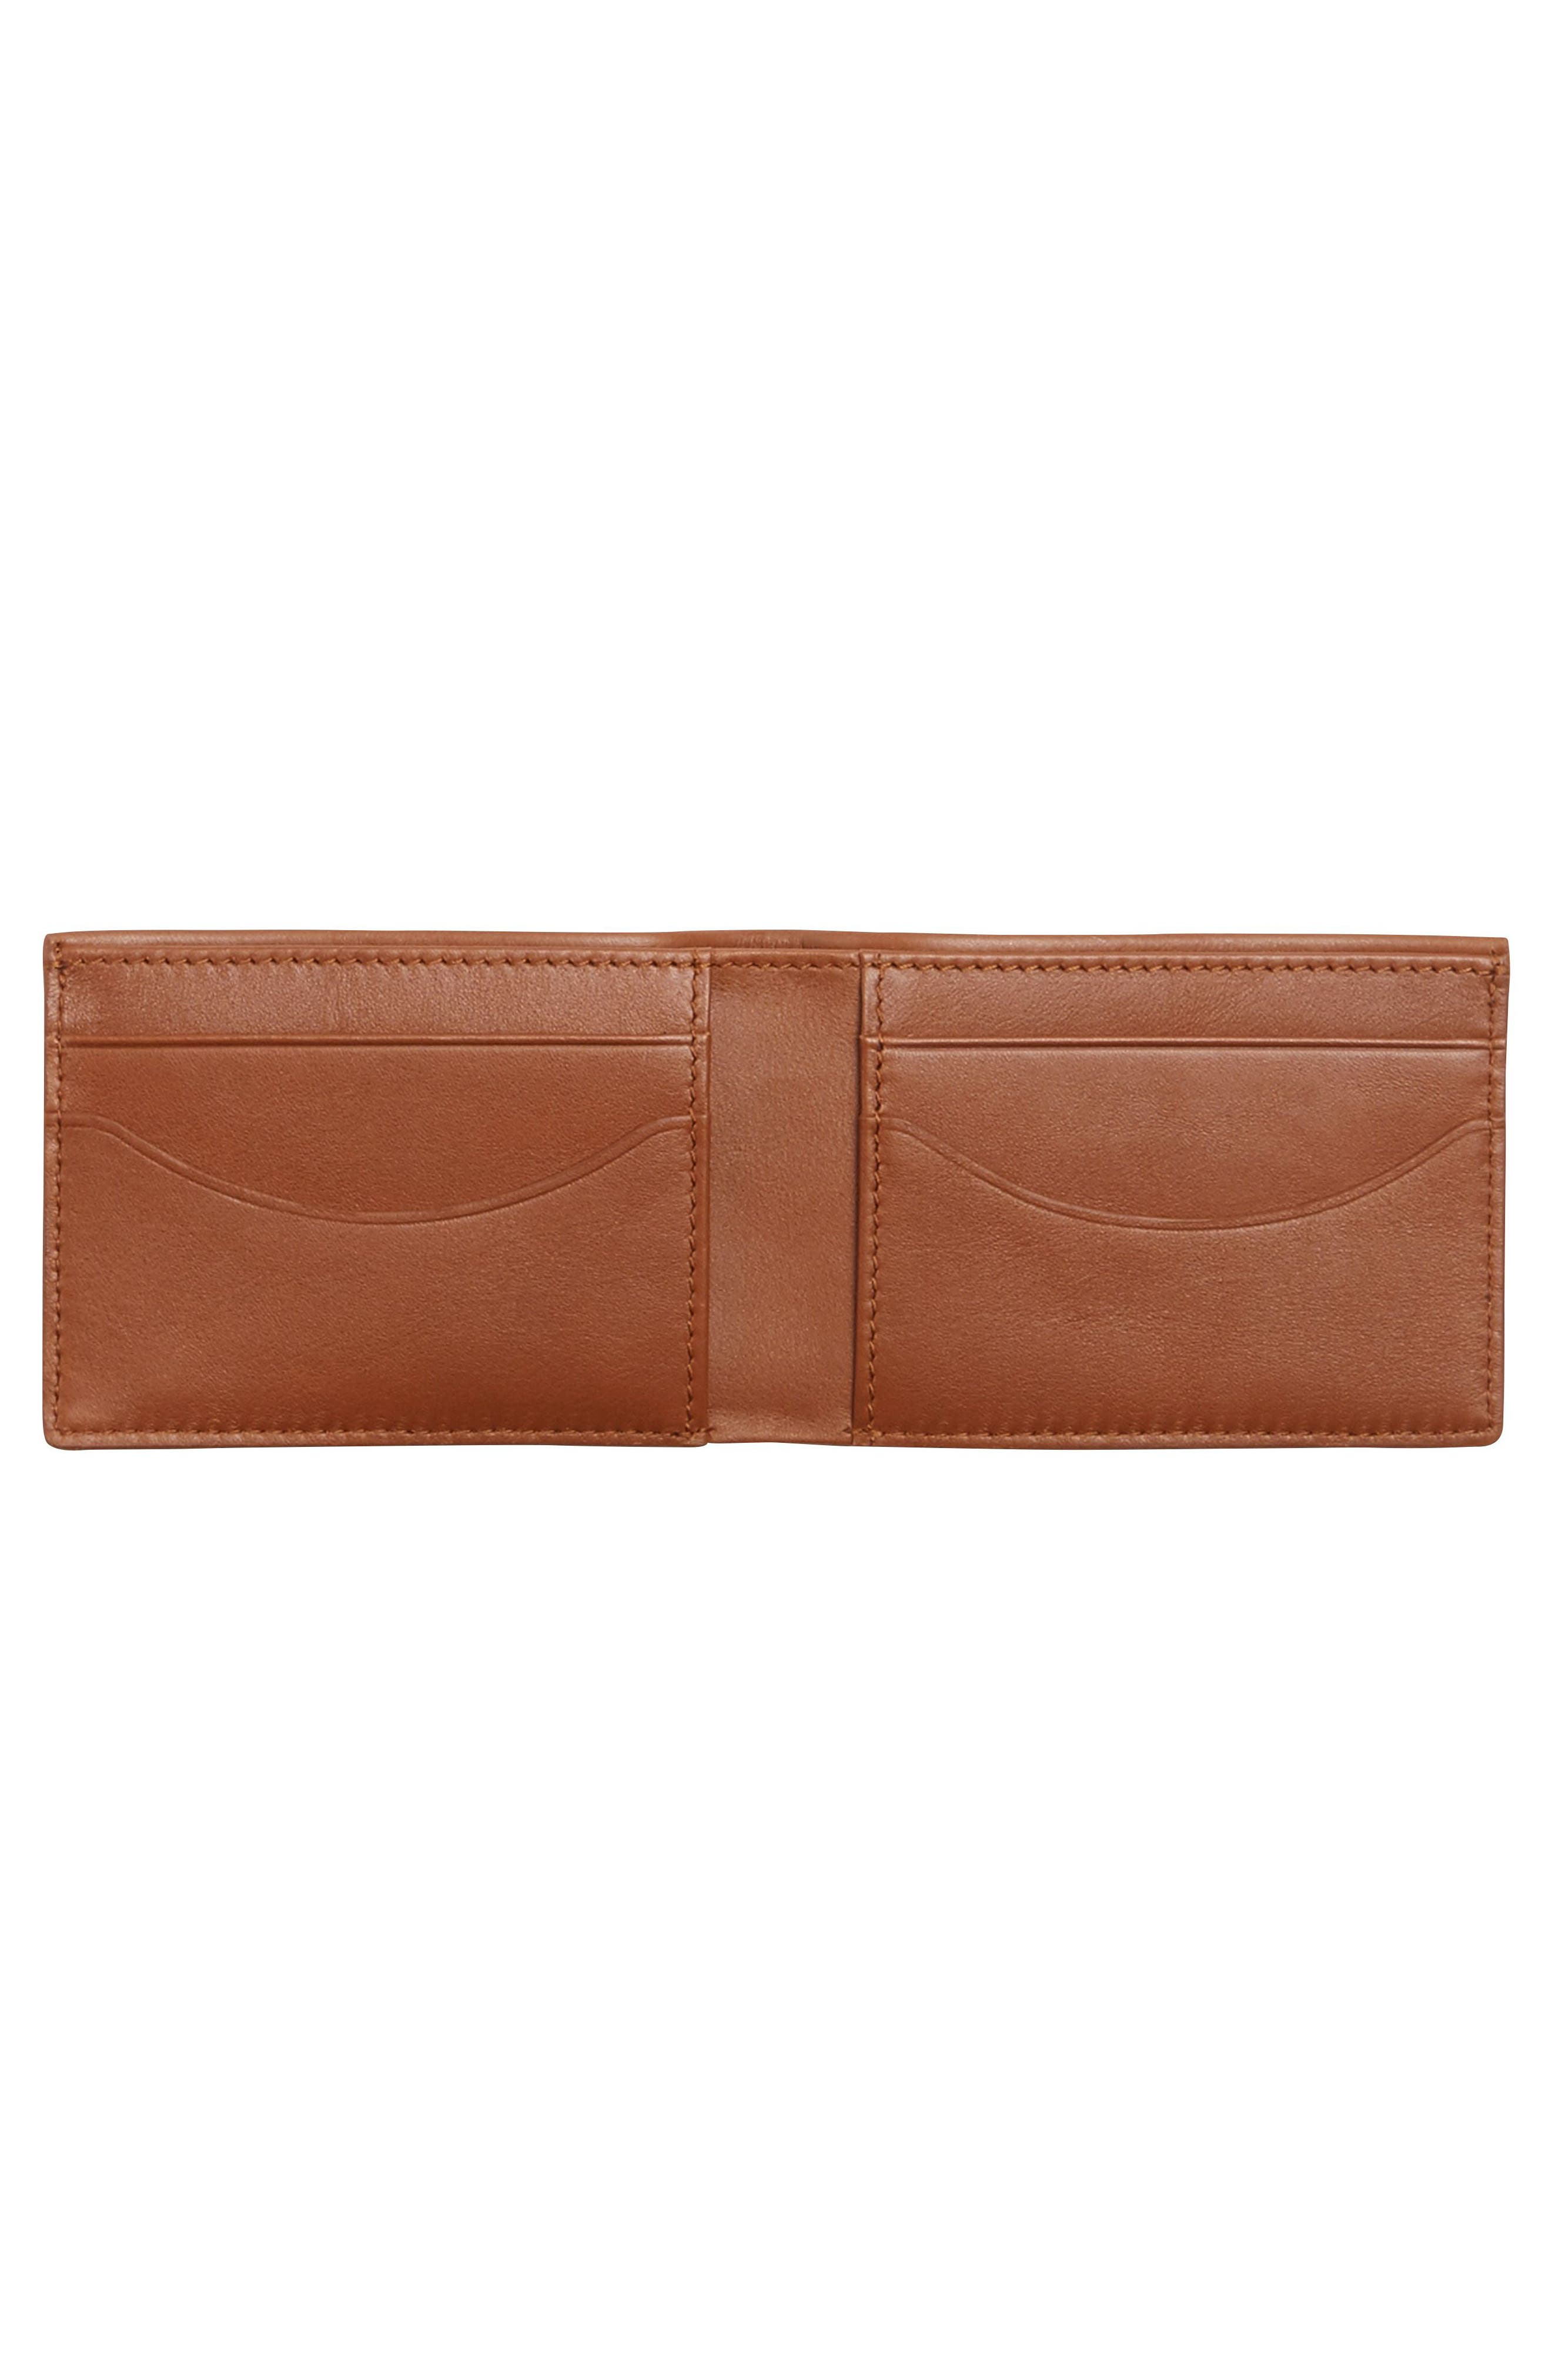 Leather Wallet,                             Alternate thumbnail 2, color,                             222